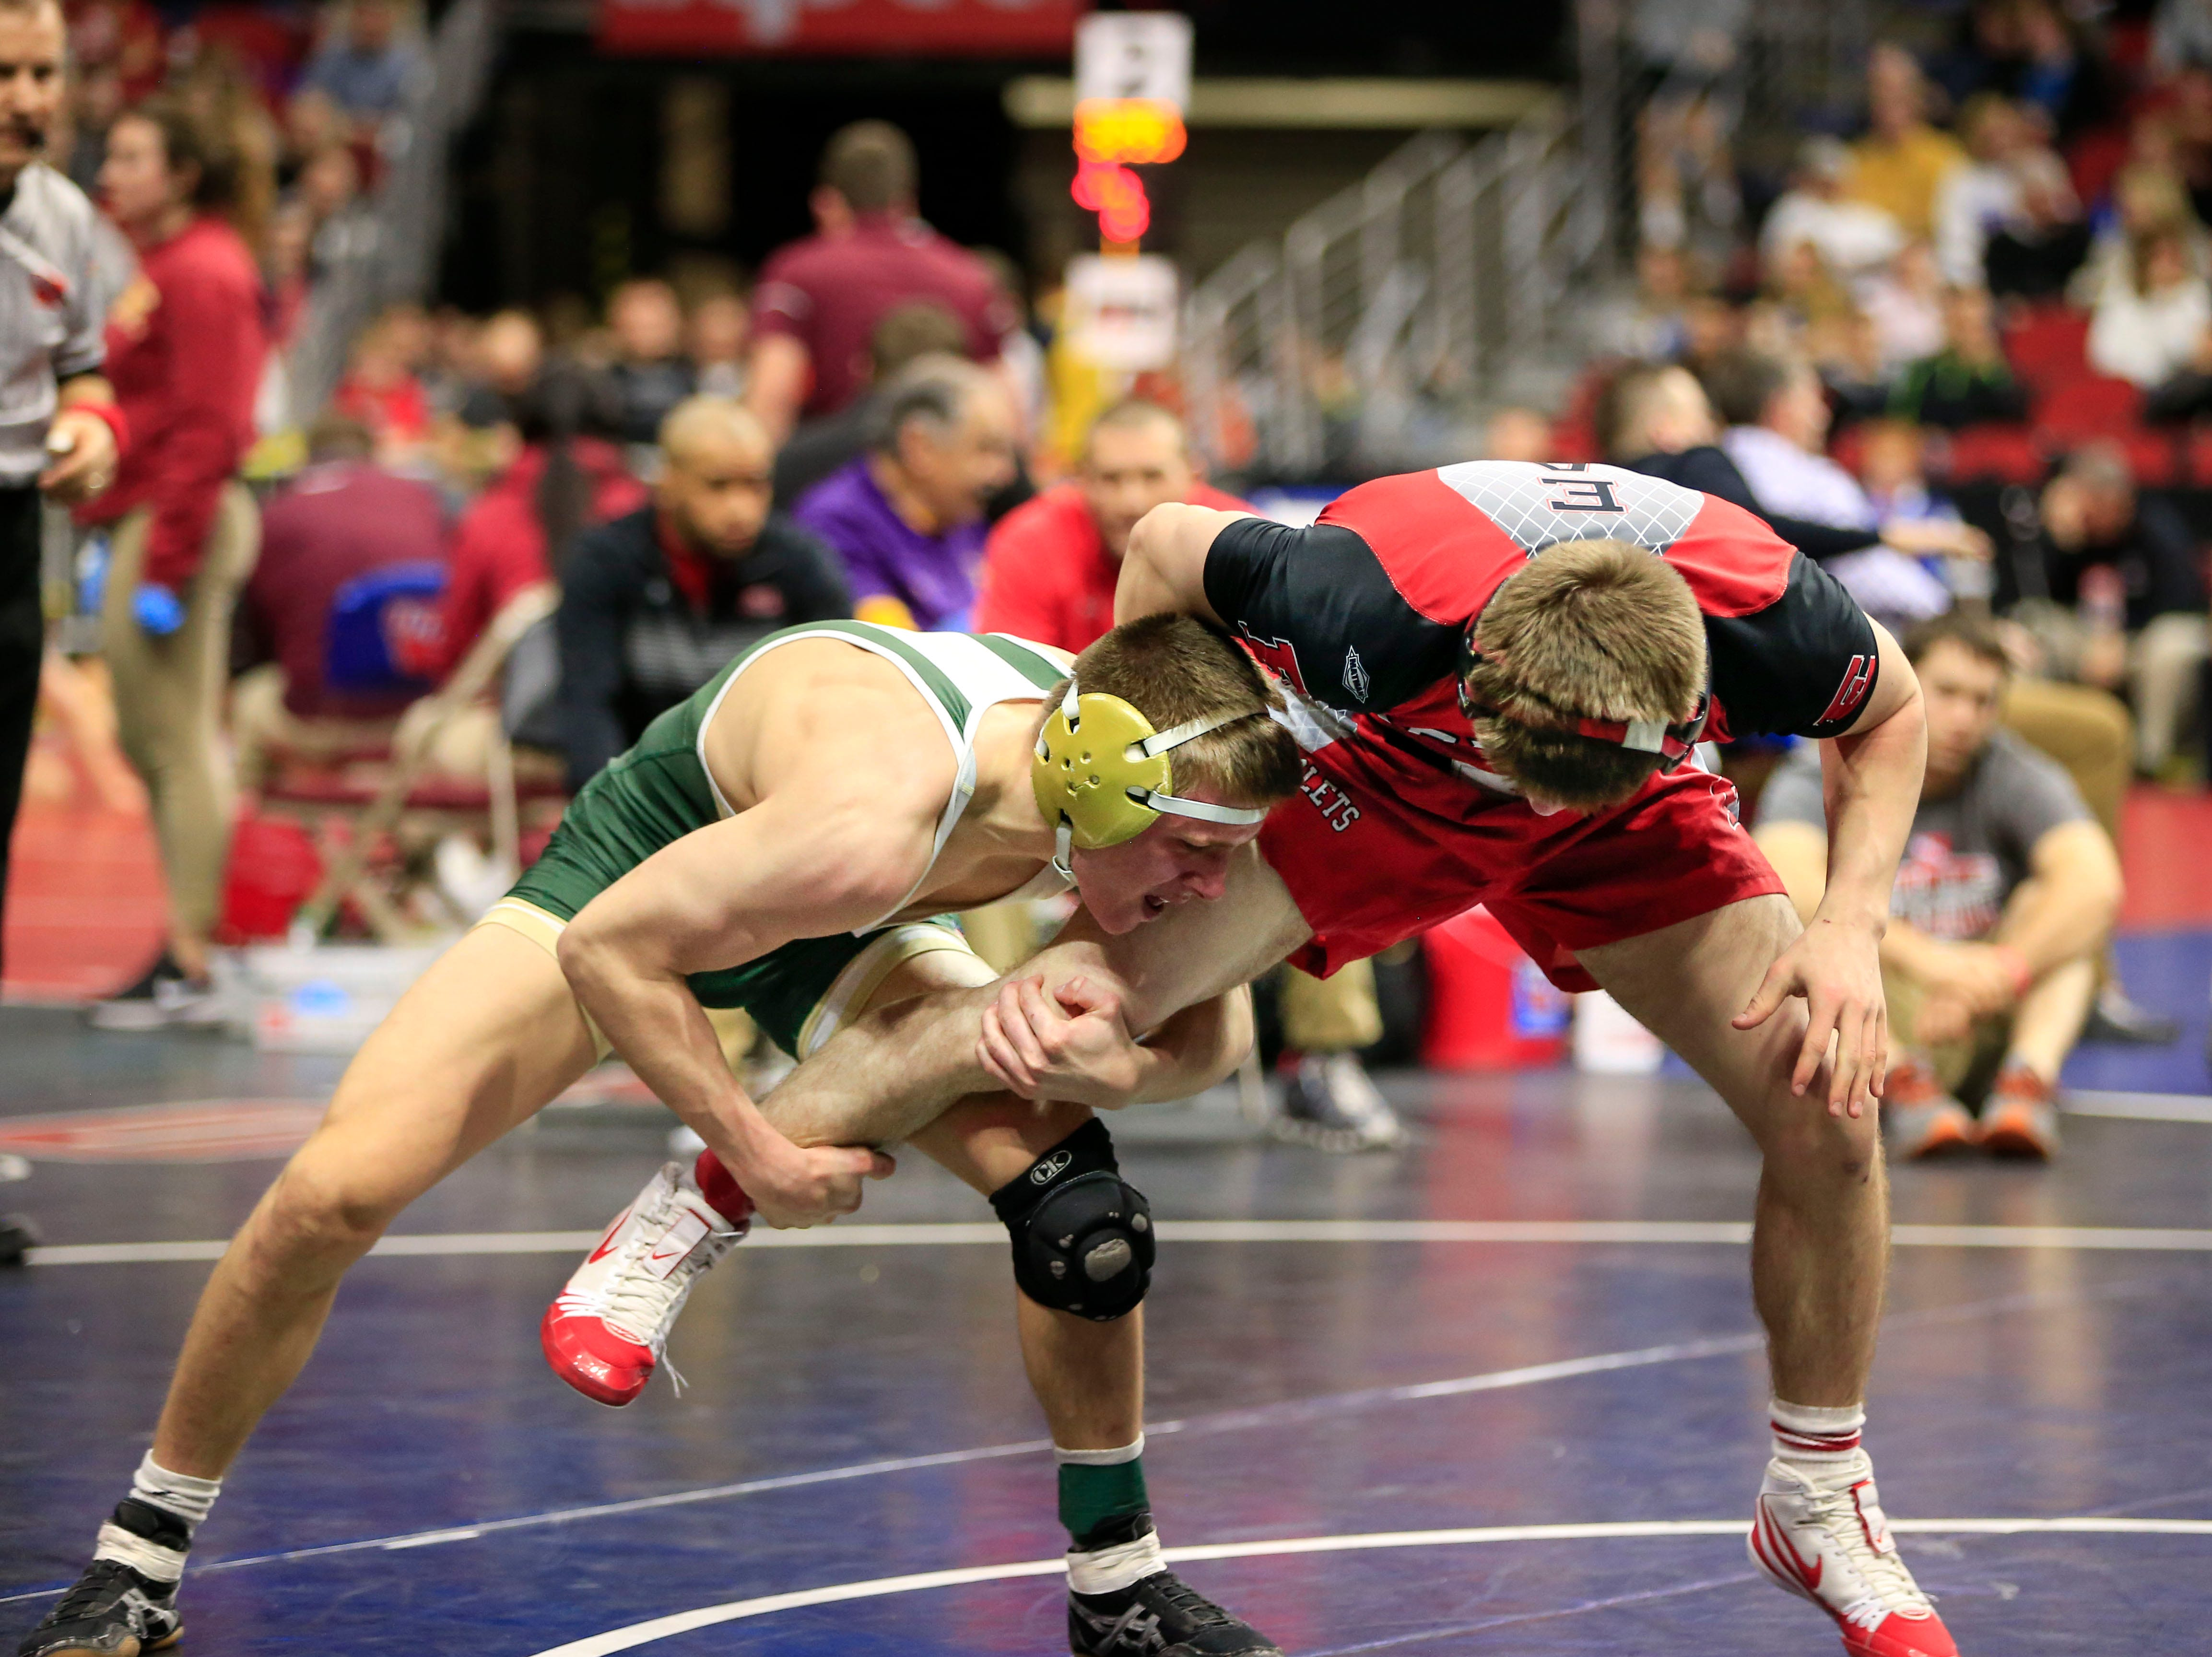 Joe Pins of Dubuque Hempstead defeats Brock Espalin of Des Moines East during a 132 Lb 3A semifinal match at the state wrestling tournament Friday, Feb. 15, 2019.